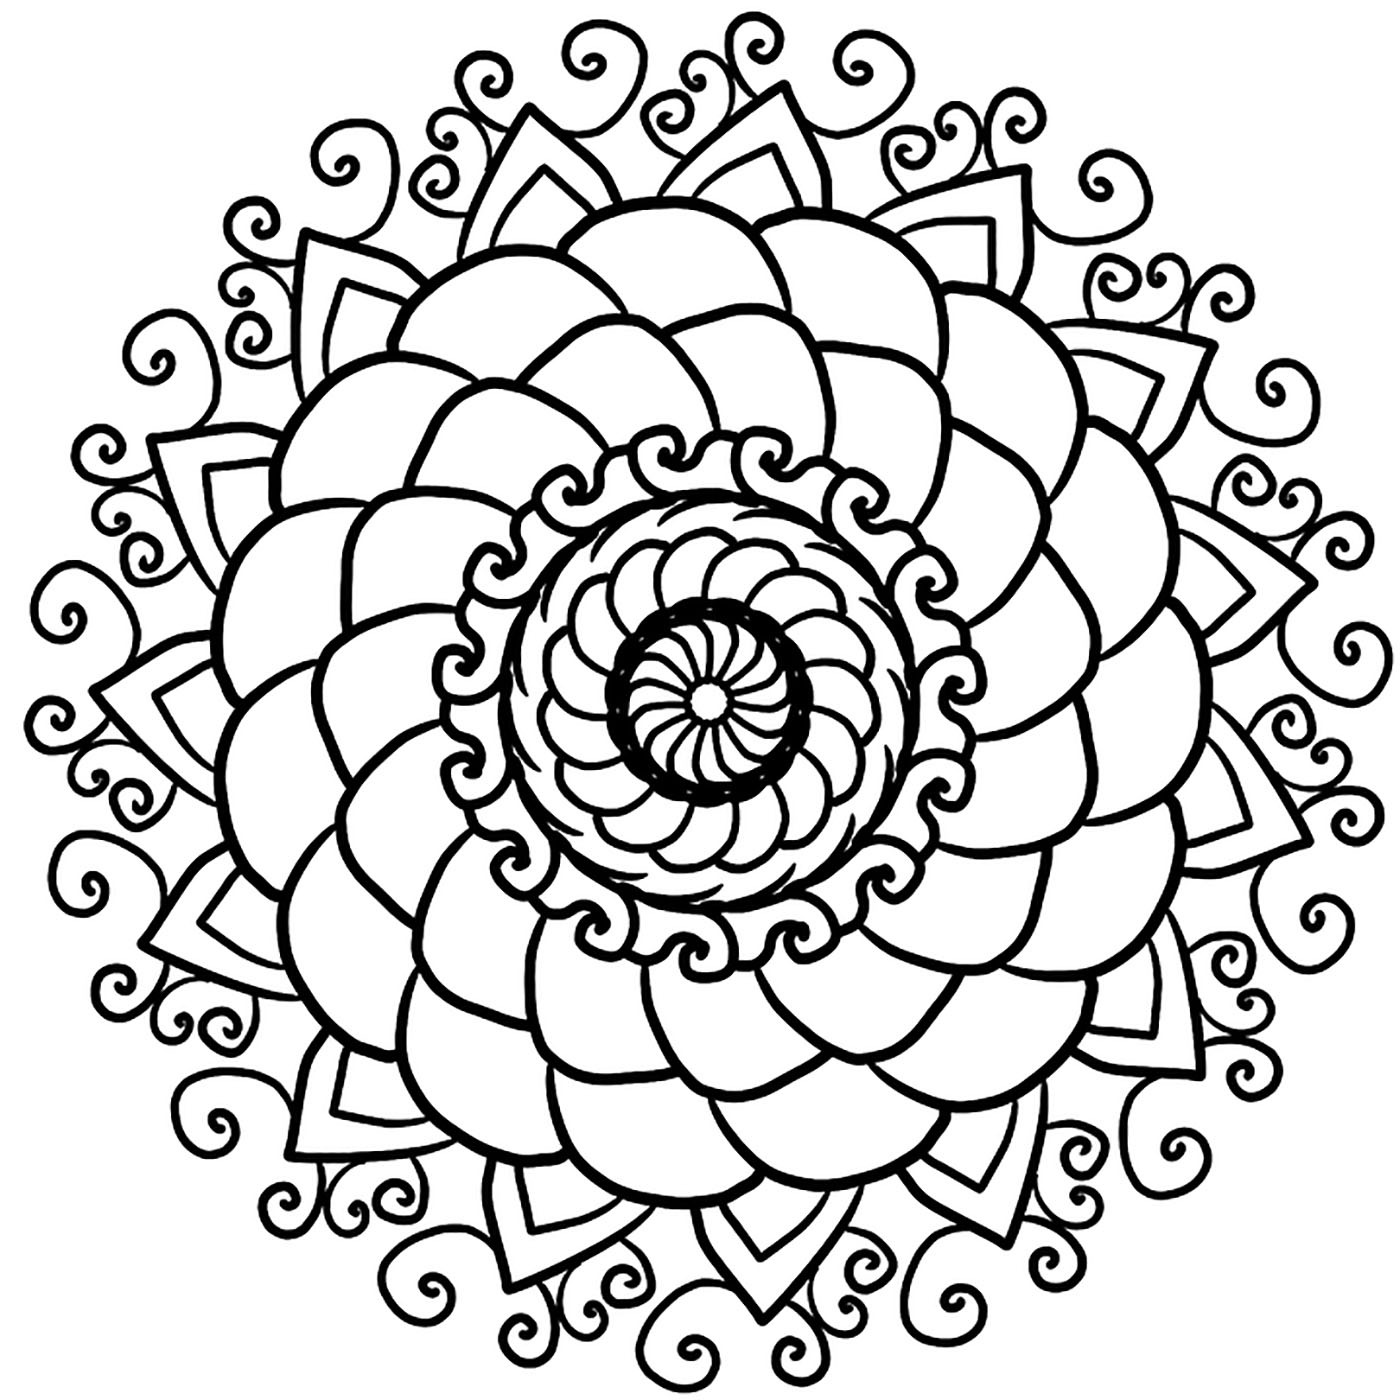 This Mandala has several levels and types of patterns, it is quite simple, but it will bring you peace and serenity.